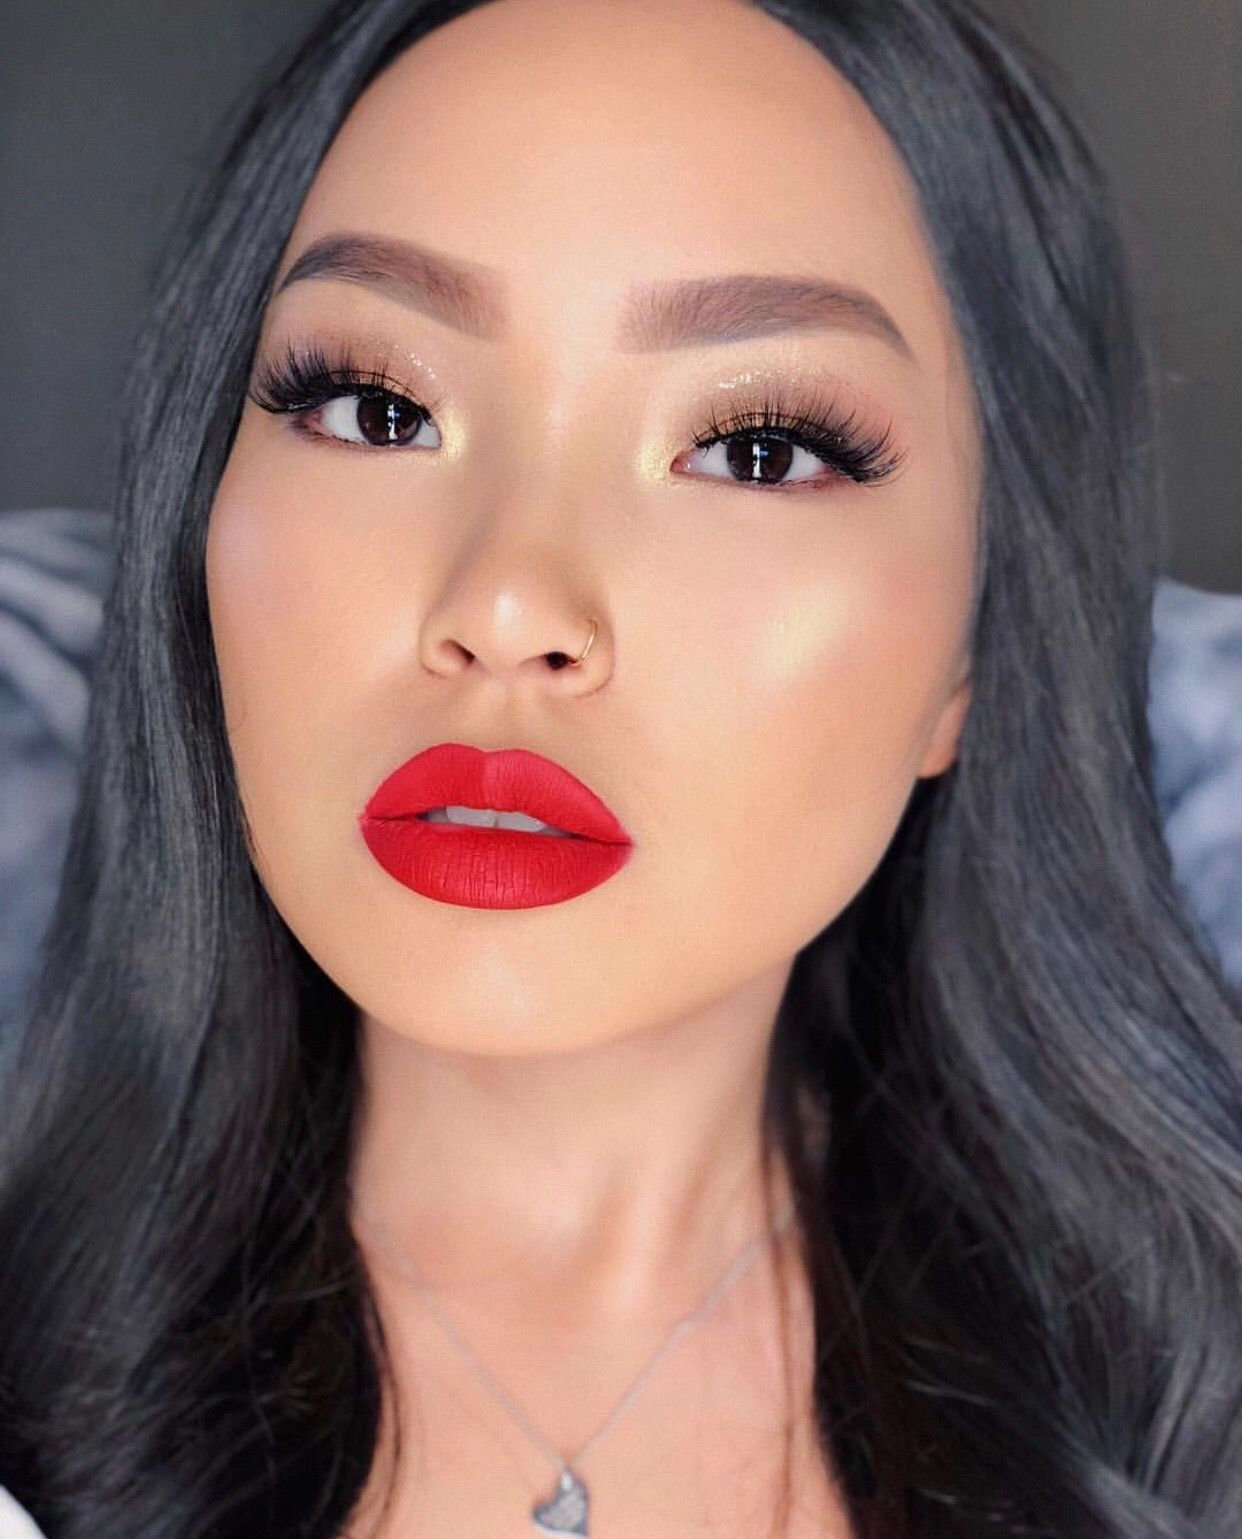 No Fx1 In 2020 Red Lips Makeup Look Red Lipstick Makeup Red